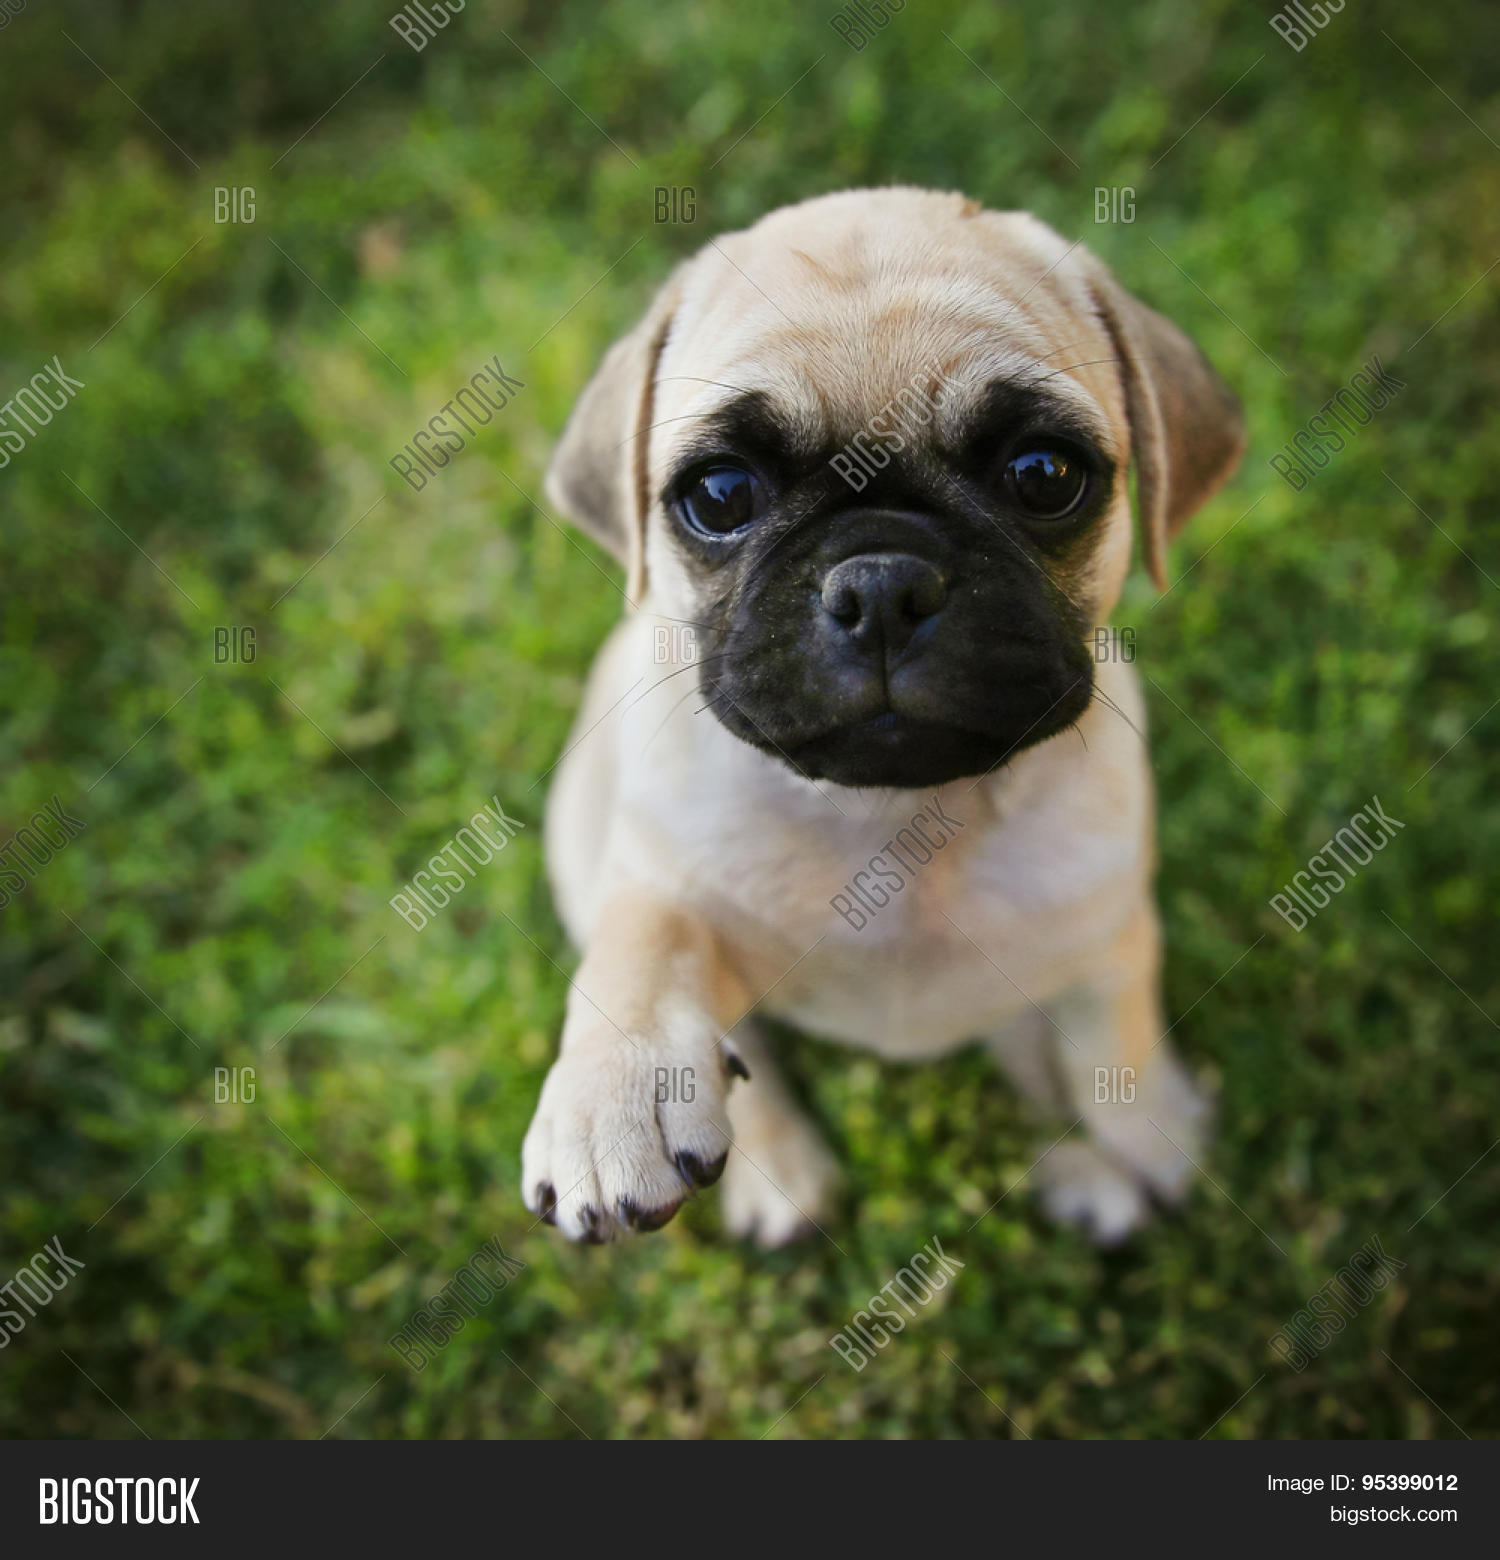 Cute Chihuahua Pug Mix Image & Photo (Free Trial) | Bigstock